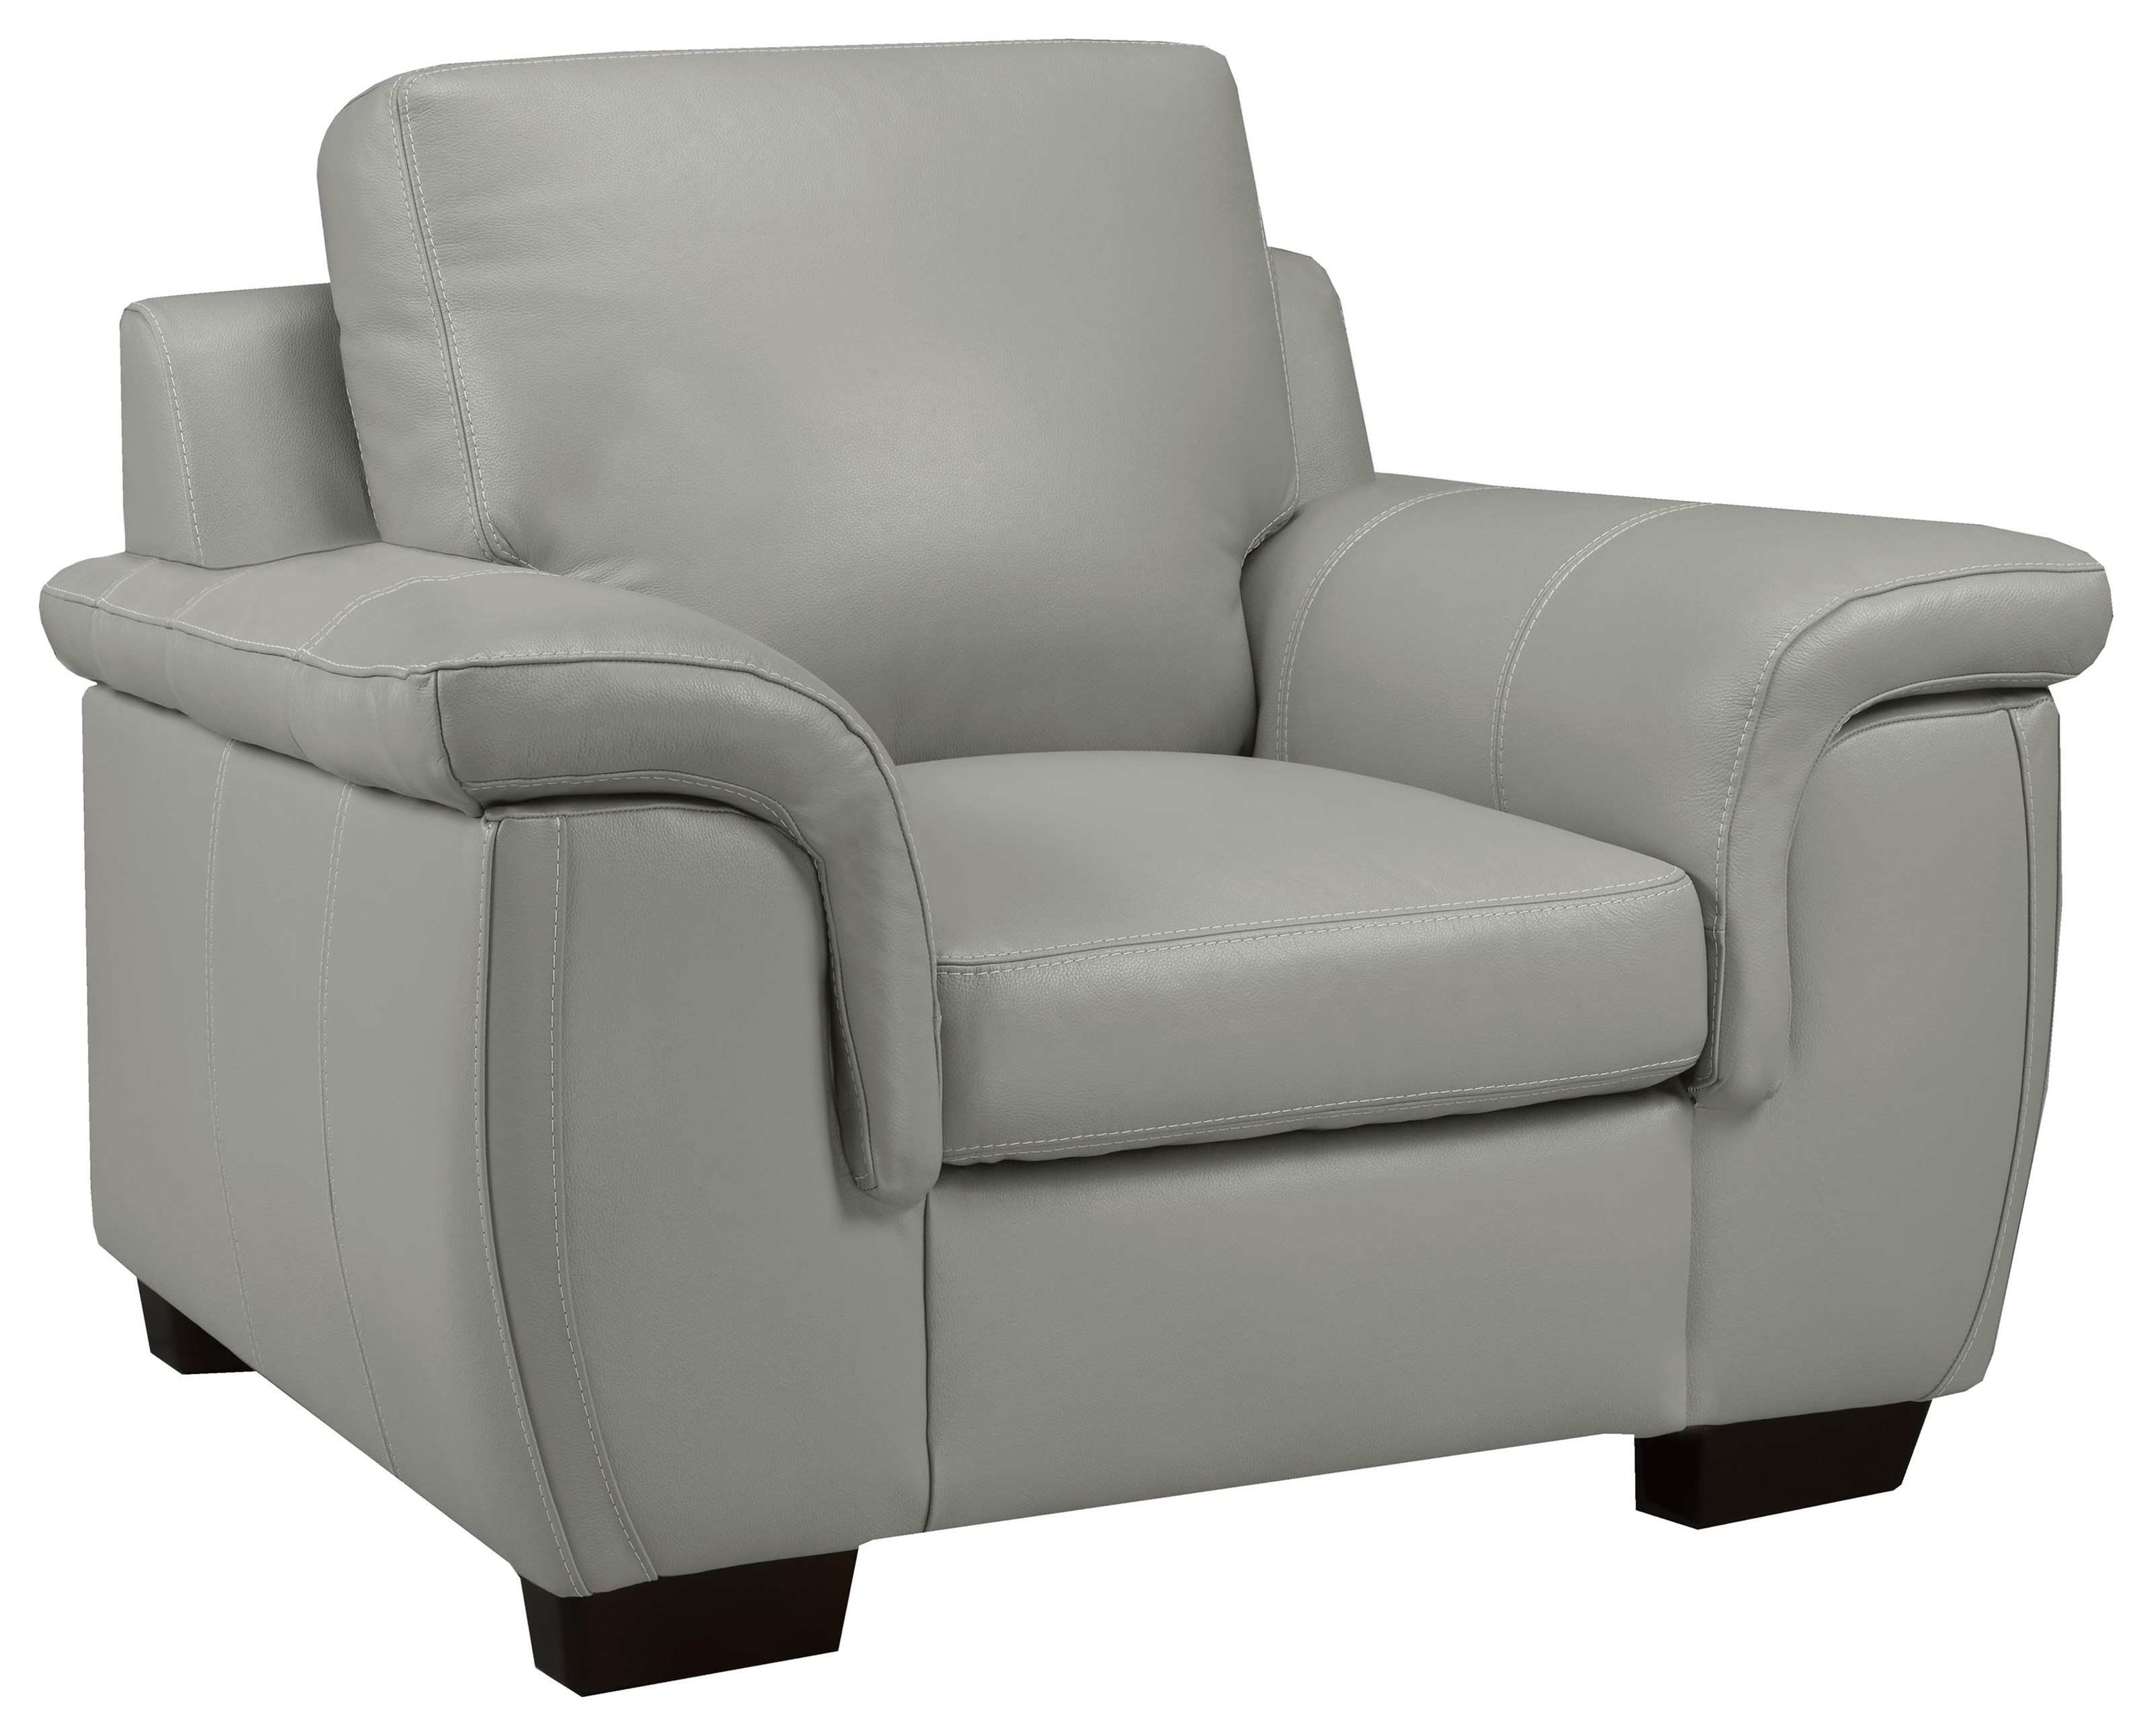 Brisbane Chair - Lthr /cloud Gray Al by Leather Living at Stoney Creek Furniture